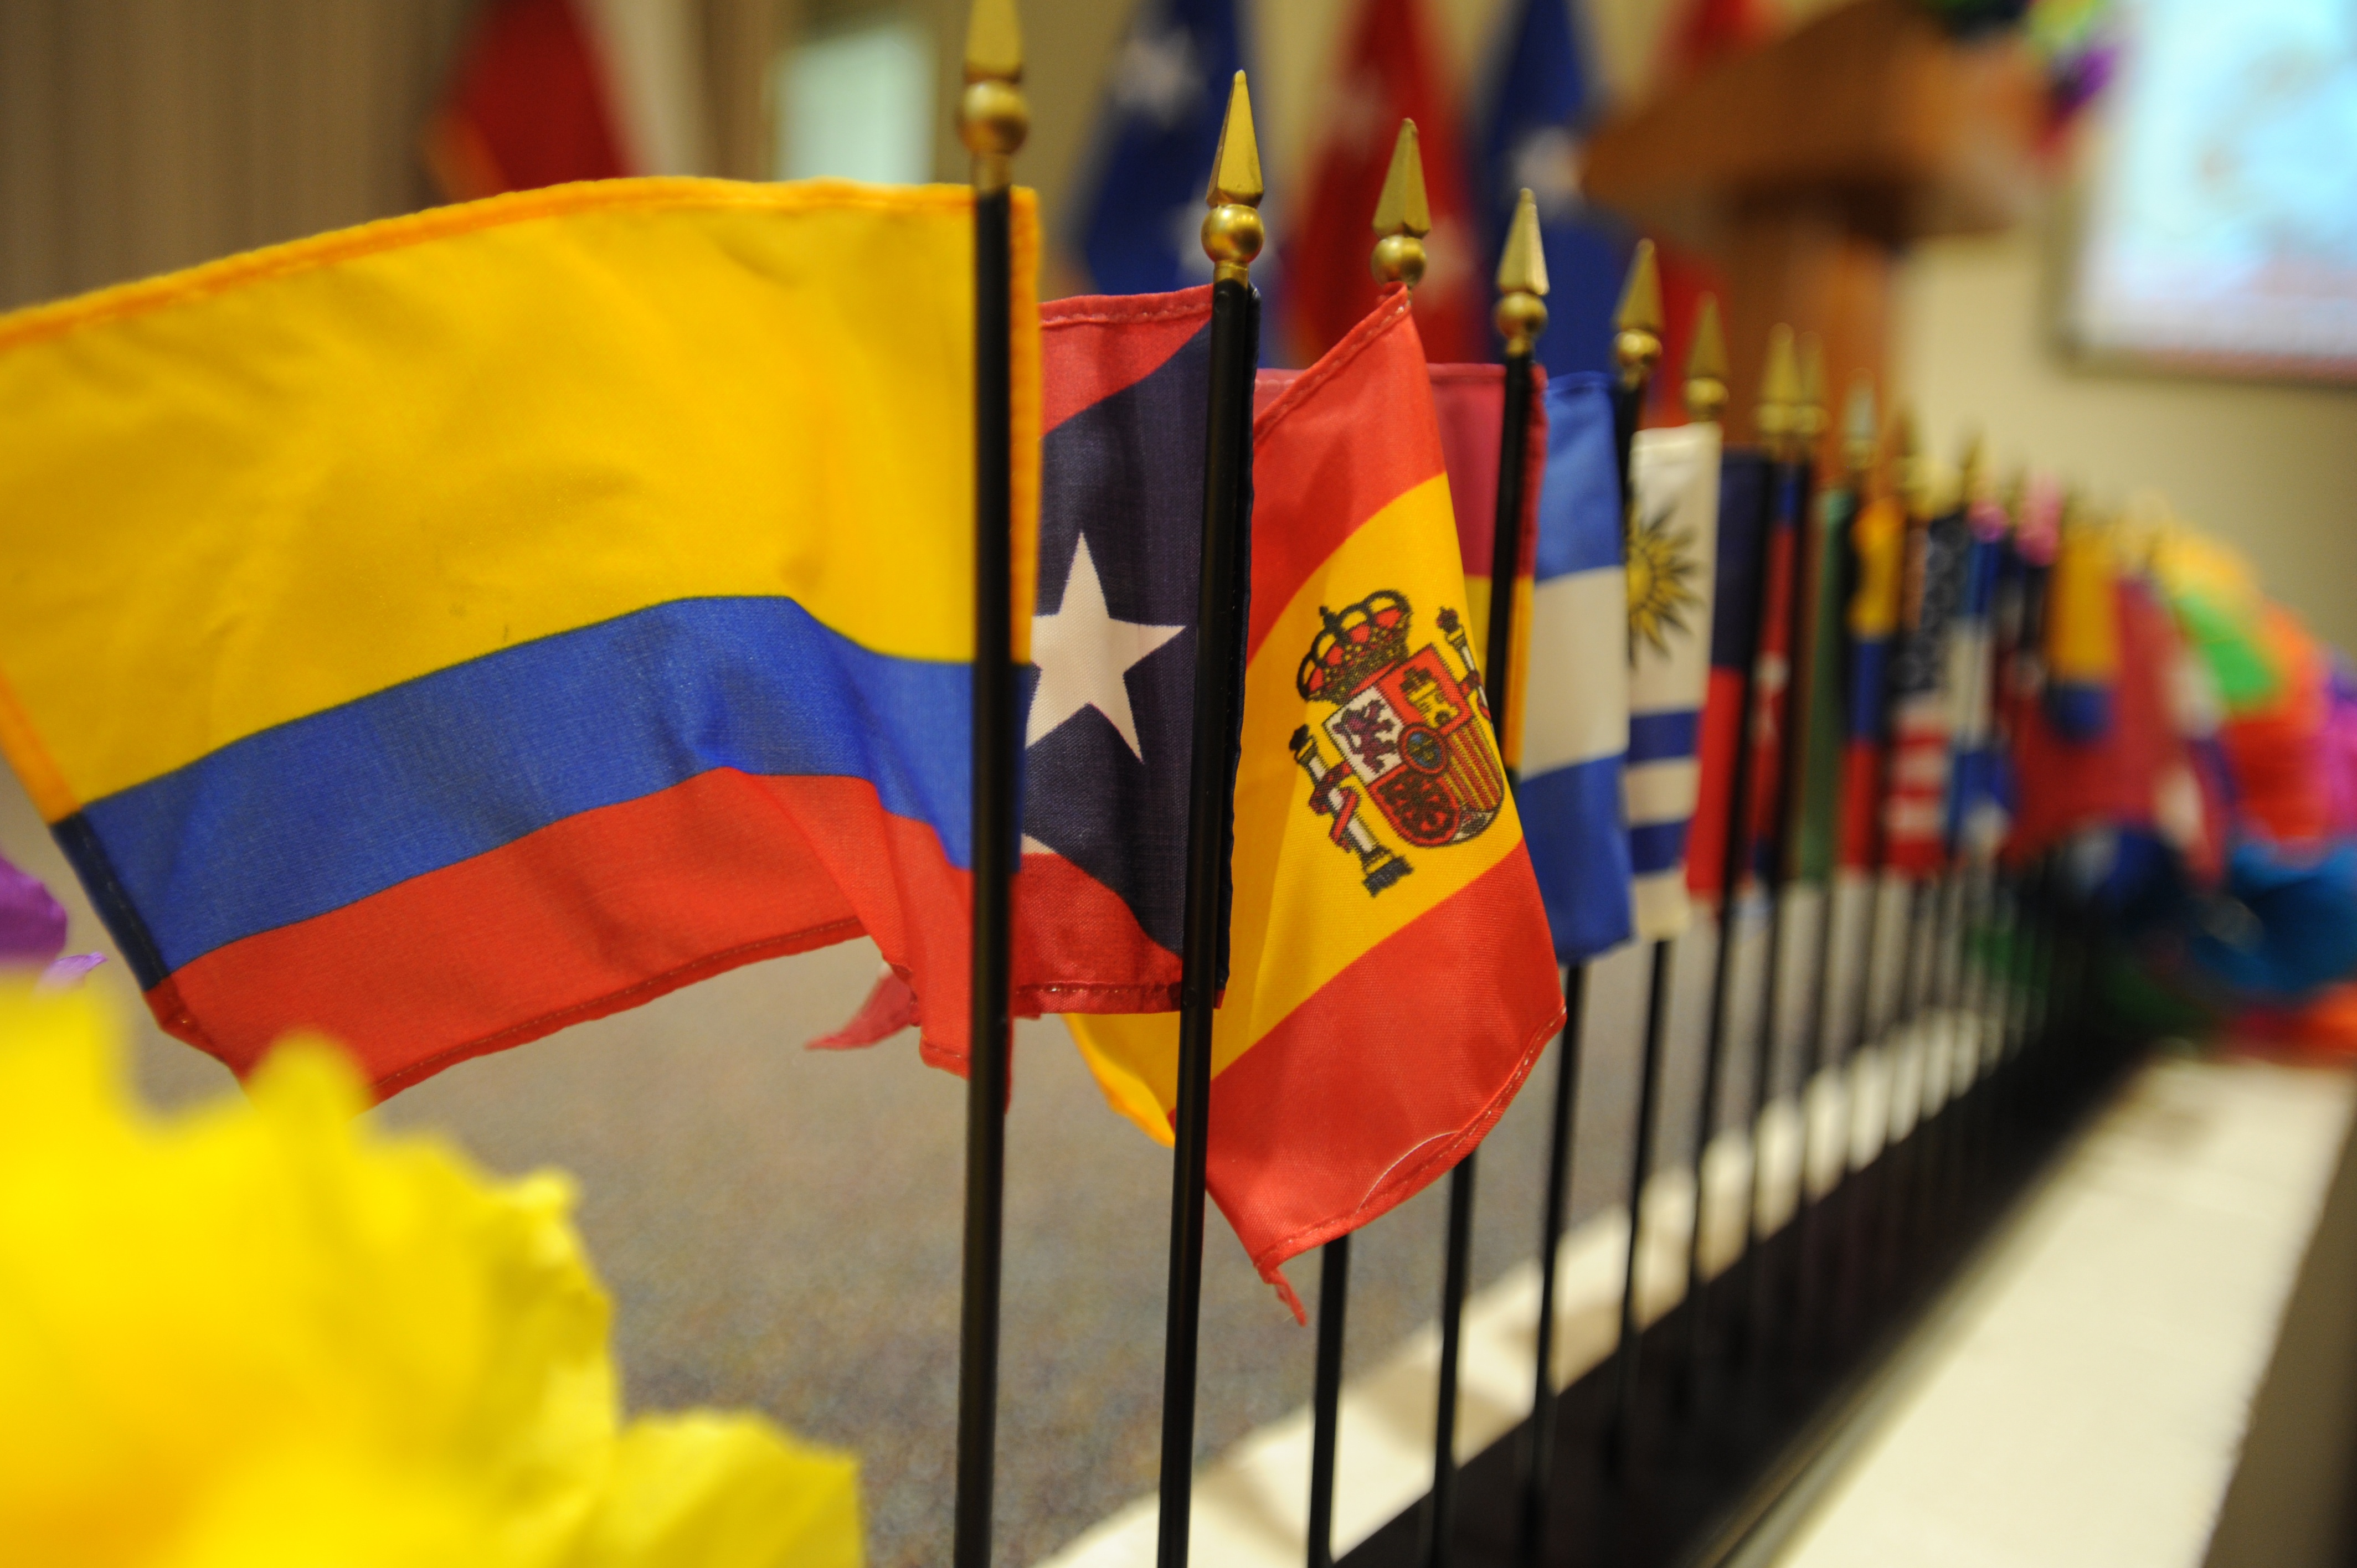 Display of different Latin American flags.